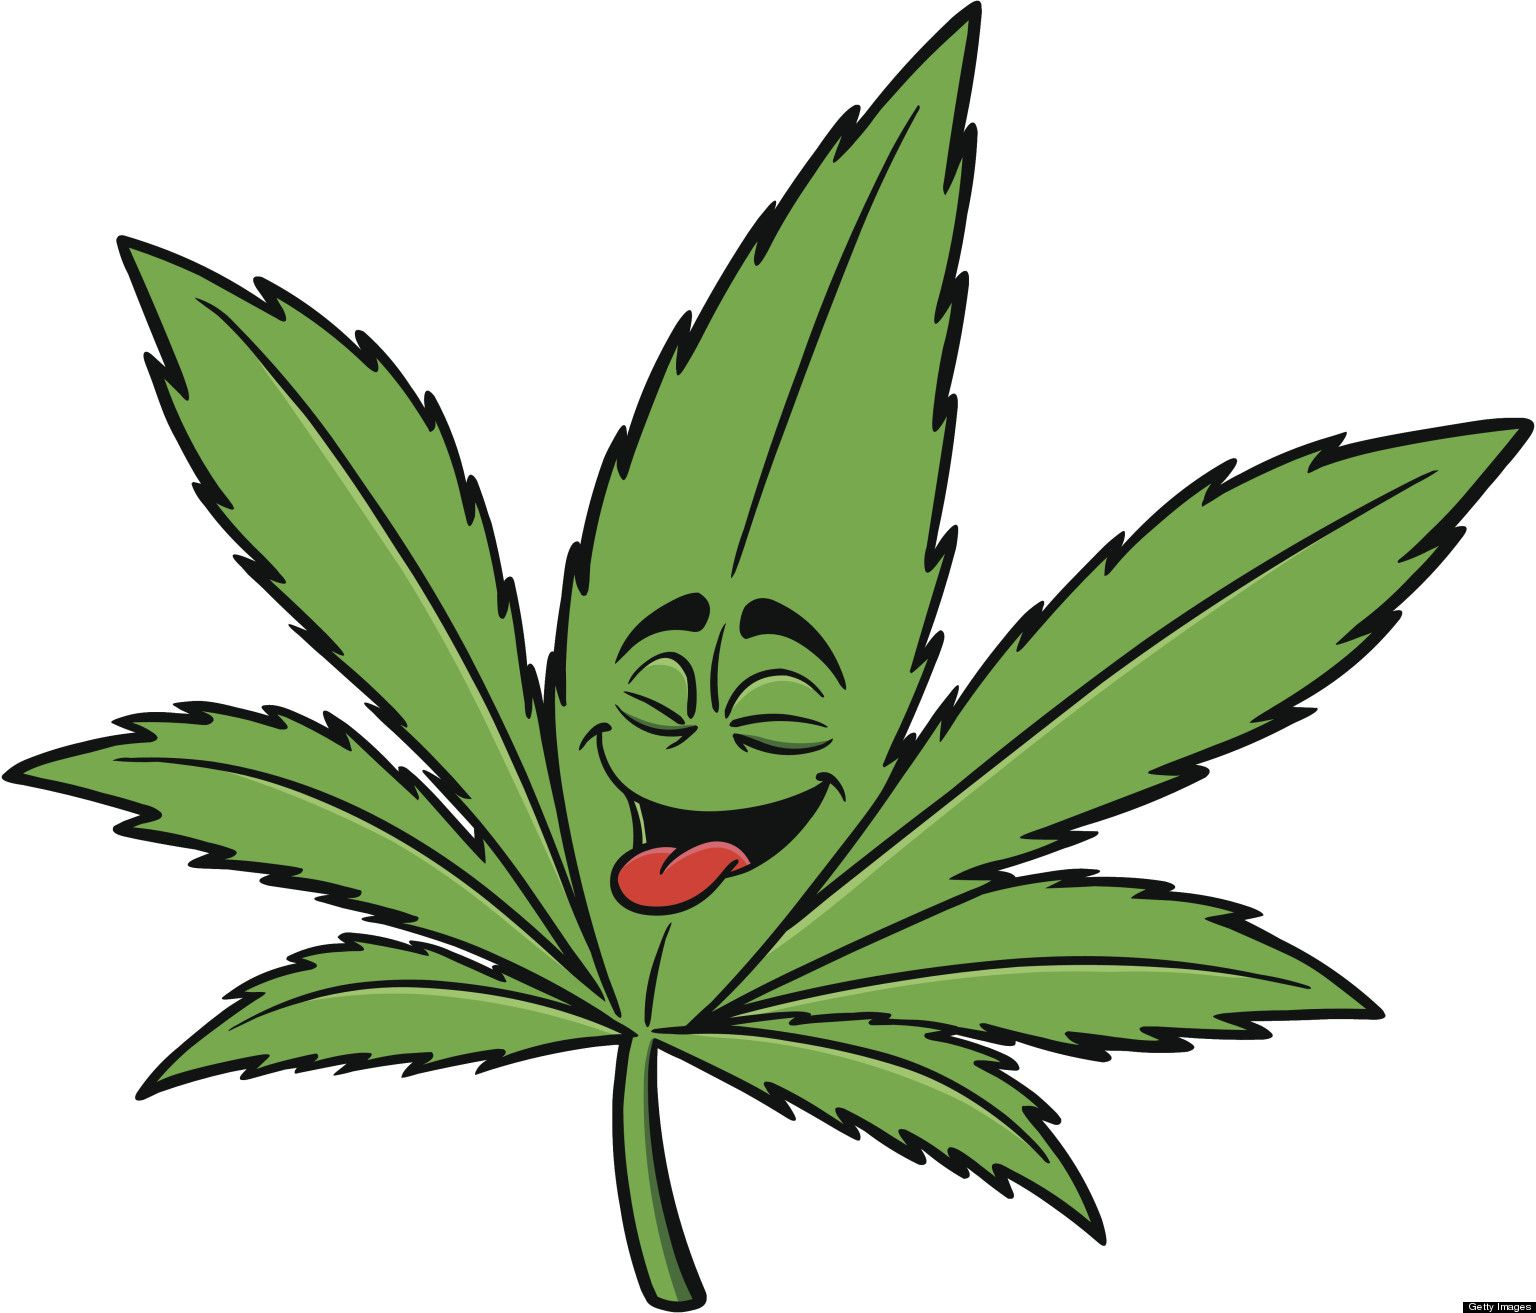 Weed Art Drawings | Weed Drawings - 220.2KB